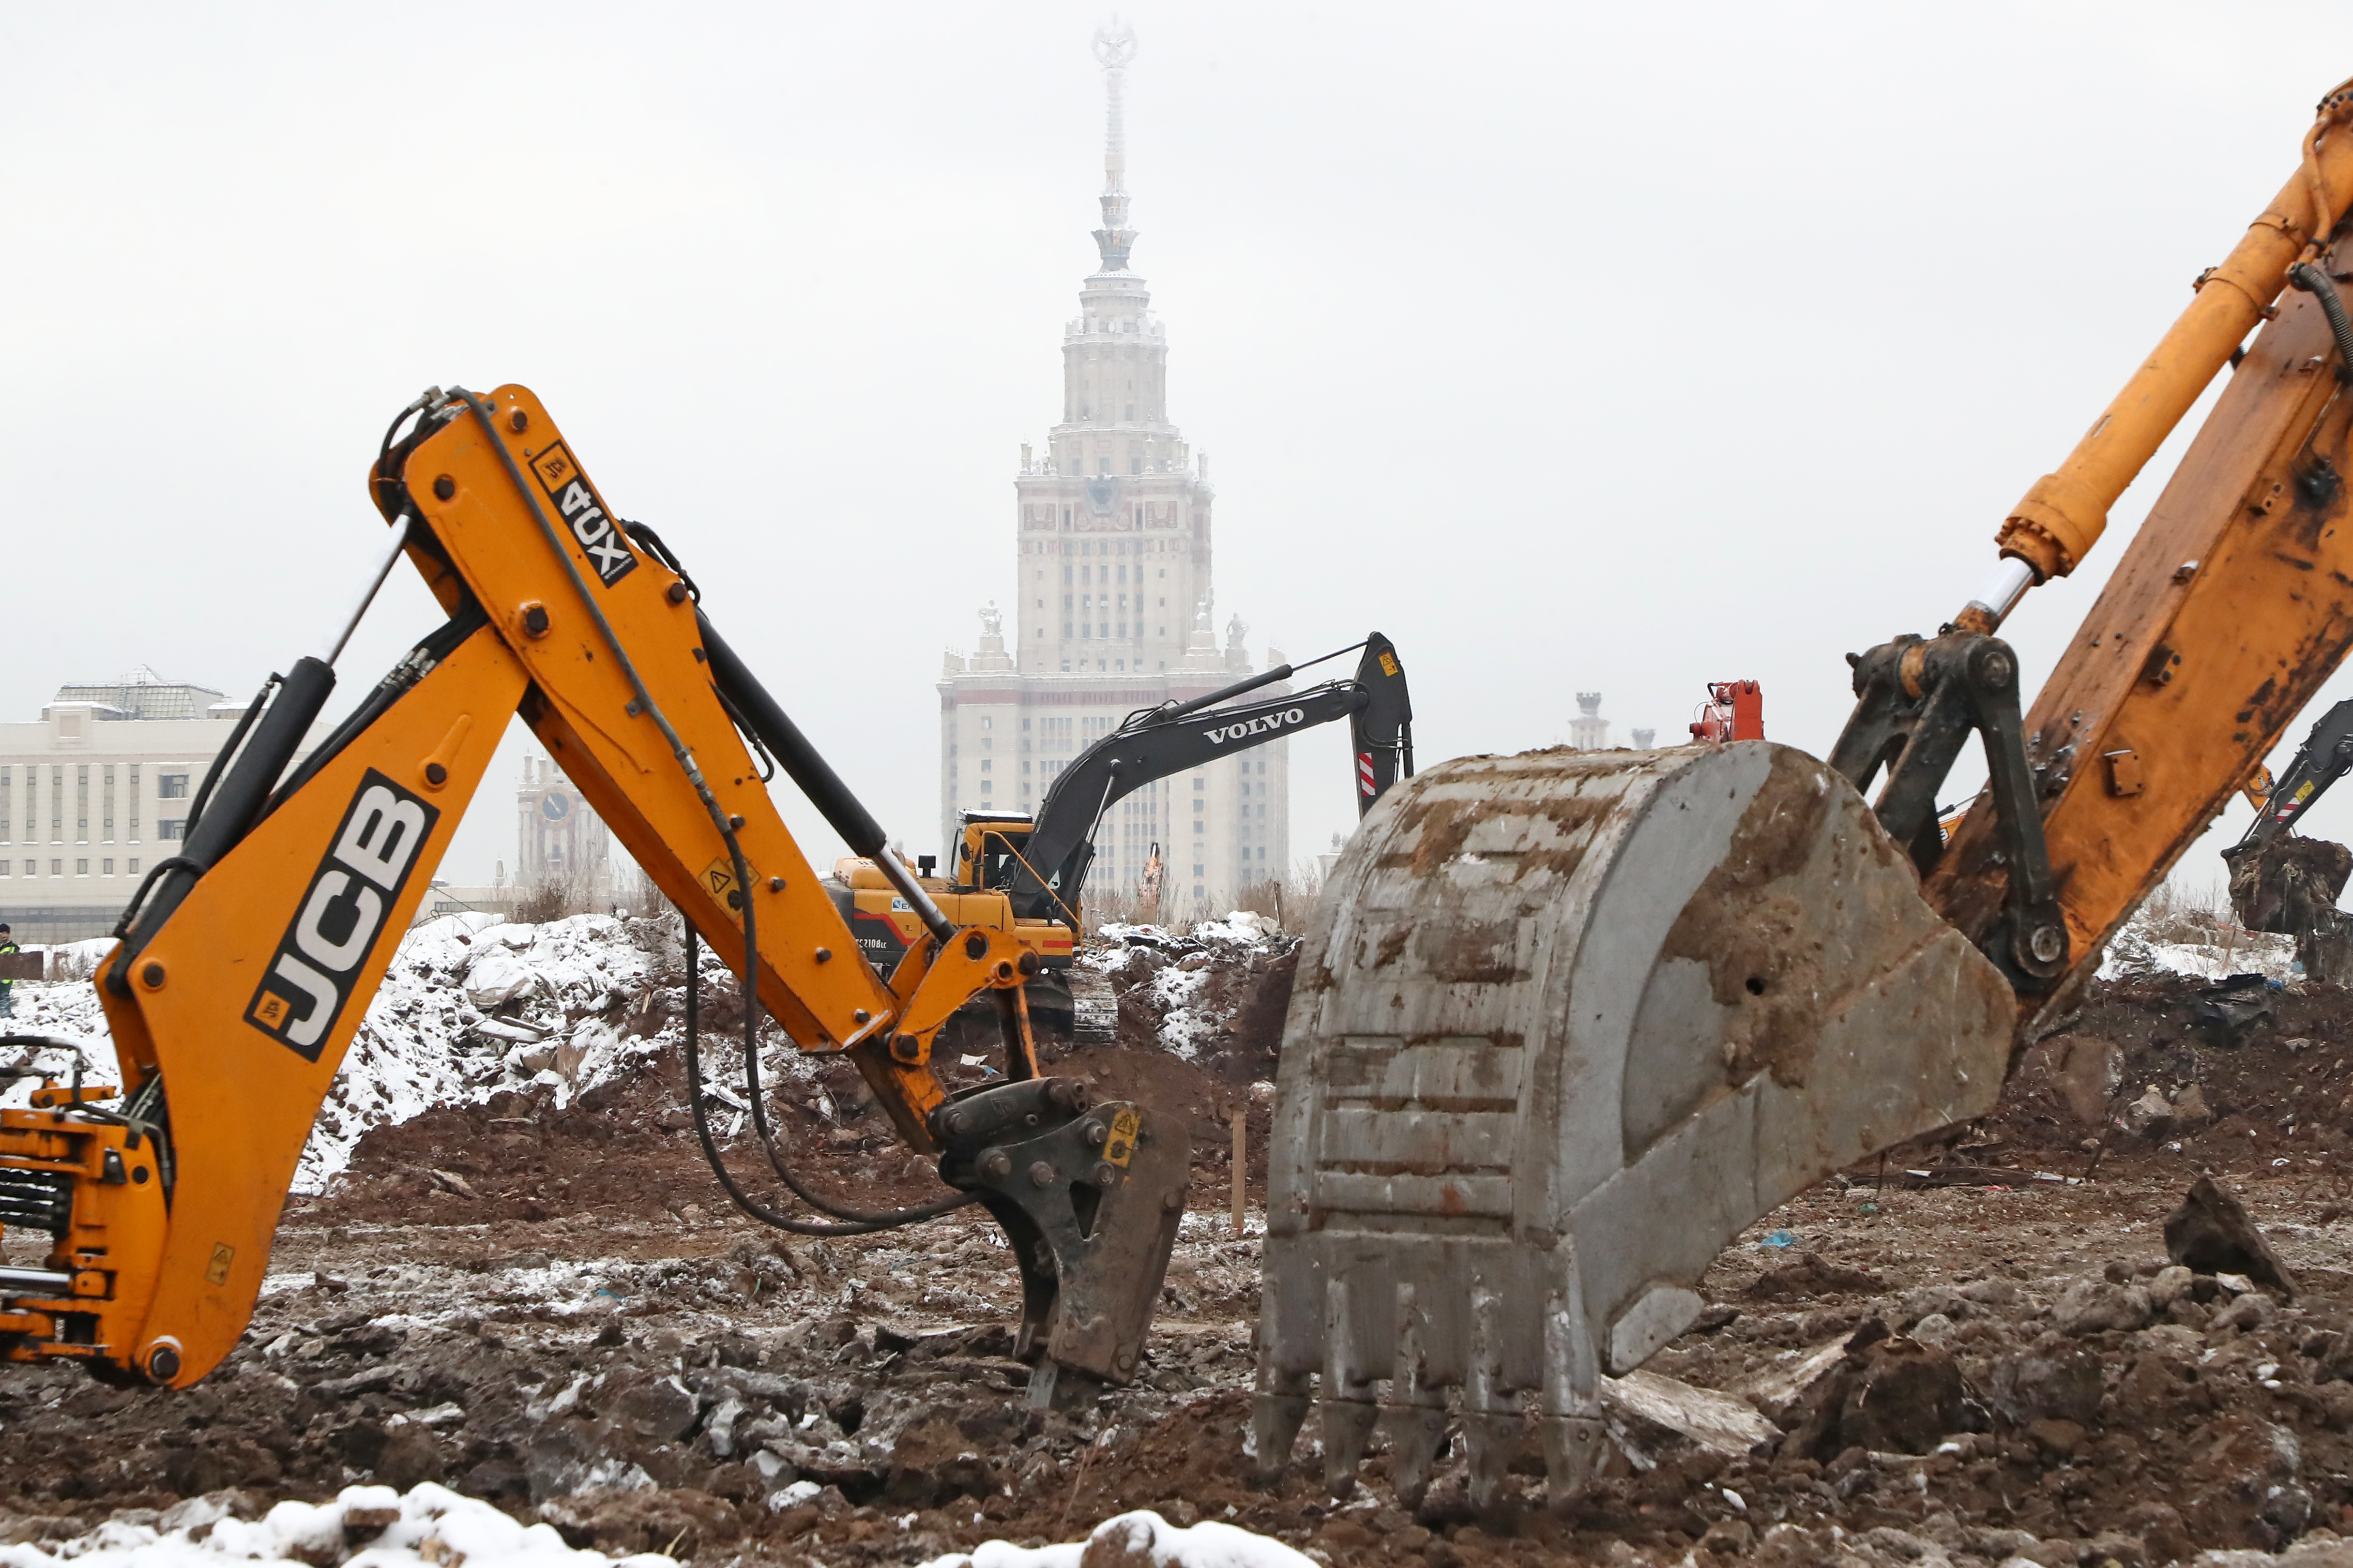 MOSCOW, RUSSIA – JANUARY 7, 2021: Work underway to clean up a former dumping ground at the construction site of Moscow State University's Vorobyovy Gory Innovative Science and Technology Center (INTTs). The site with an area of 300,000 square metres is expected to be cleaned up in one and a half months. The project is unofficially referred to as 'research and technology valley ' or 'science valley'. In 2019, the Russian government announced plans to establish 15 specialised scientific and educational centres (referred to as 'valleys') based at Russia's leading universities as part of the Nauka Project. Vorobyovy Gory Innovative Science and Technology Centre will be granted special legal regimes and tax breaks similar to those granted to Skolkovo. Anton Novoderezhkin/TASS.No use Russia.